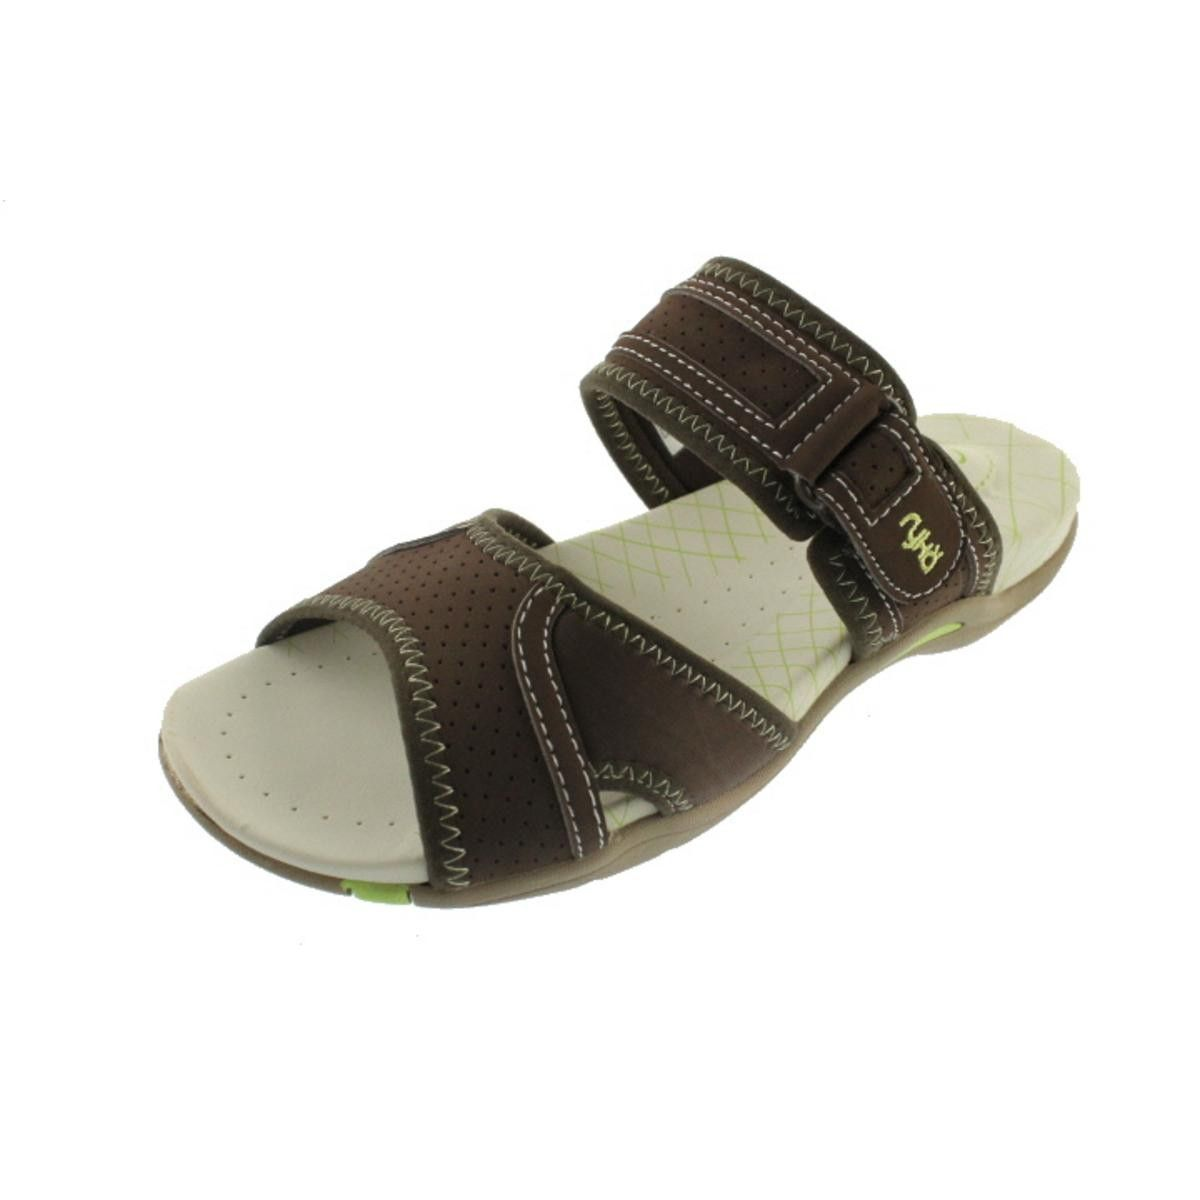 Ryka sandals shoes - Ryka 9592 Womens Essence Brown Casual Slide Sandals Shoes Medium B M Bhfo In Clothing Shoes Accessories Women S Shoes Sandals Flip Flops